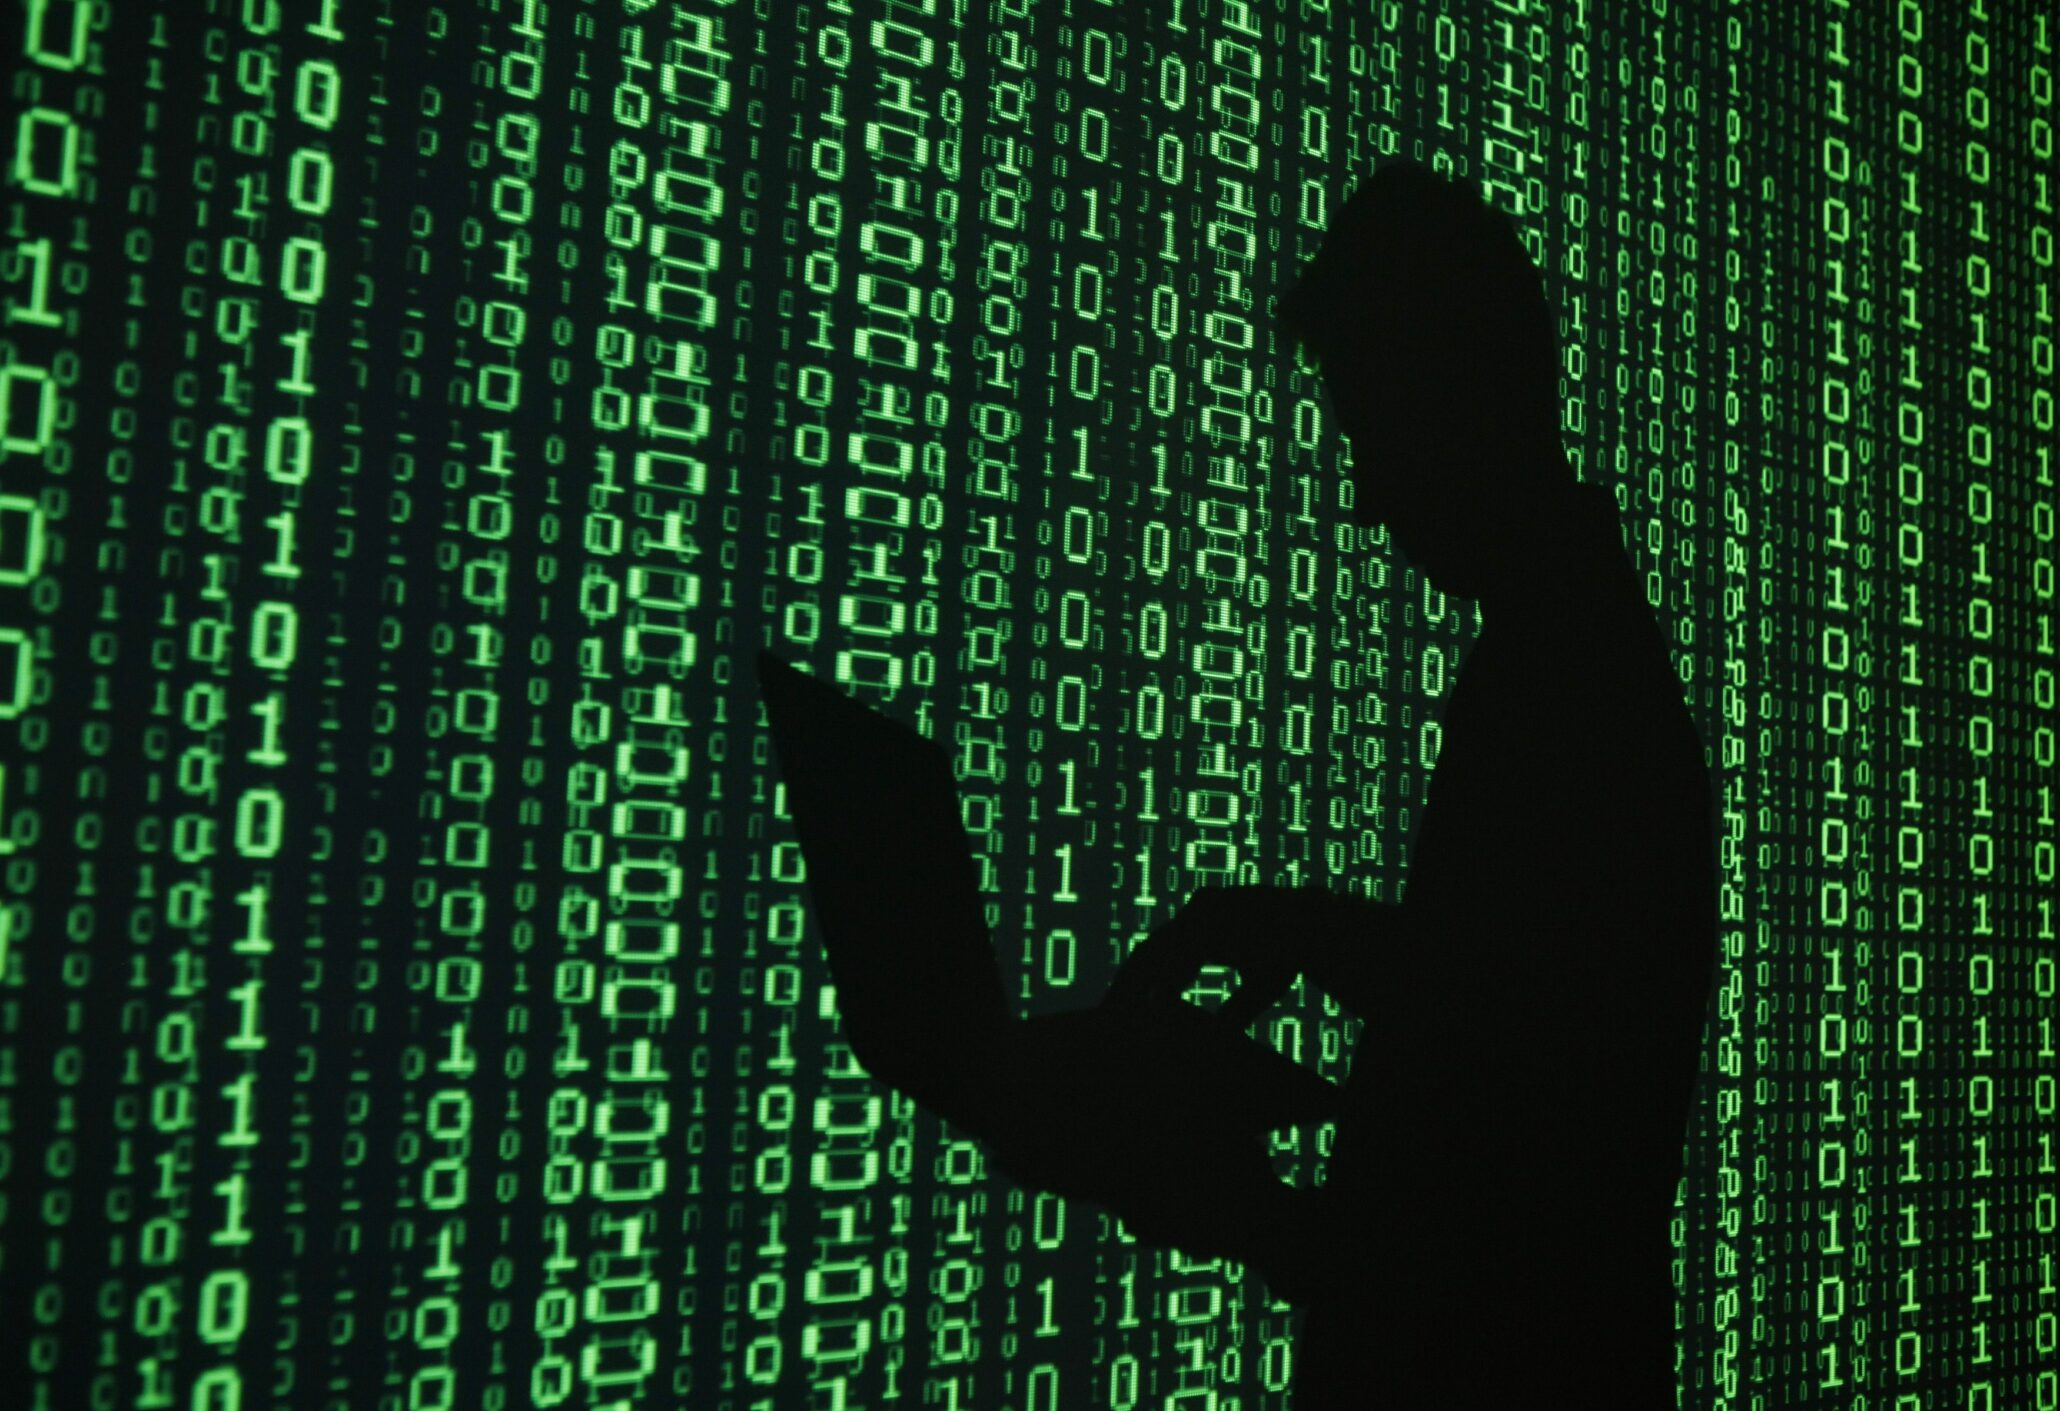 Hackers steal 45 million passwords from 1,100 websites